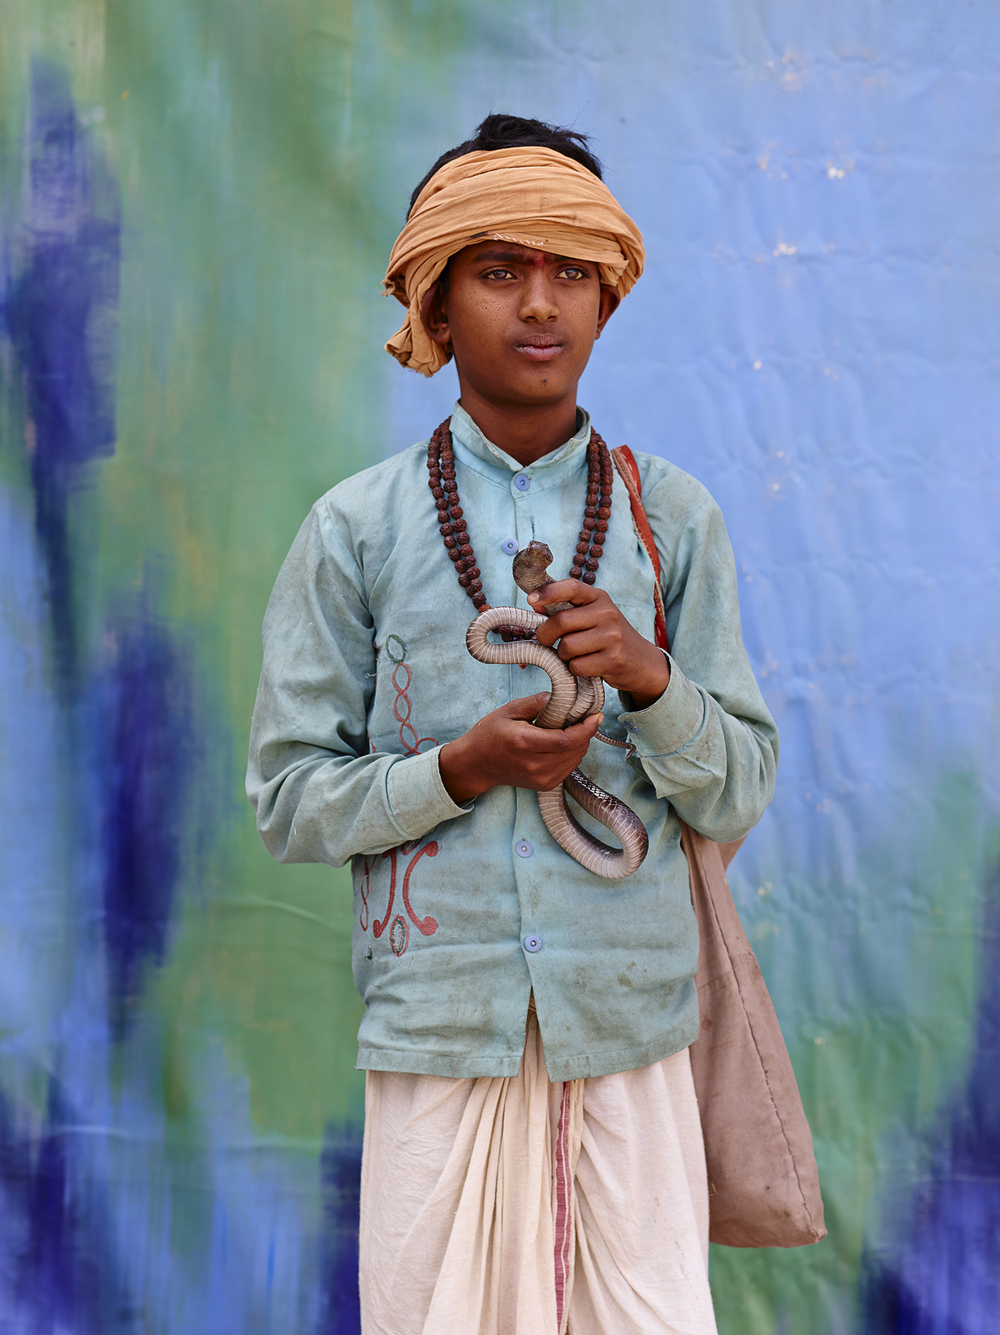 NOMADIC SNAKE CHARMER (8TH GENERATION), $15 WEEKLY, 2014